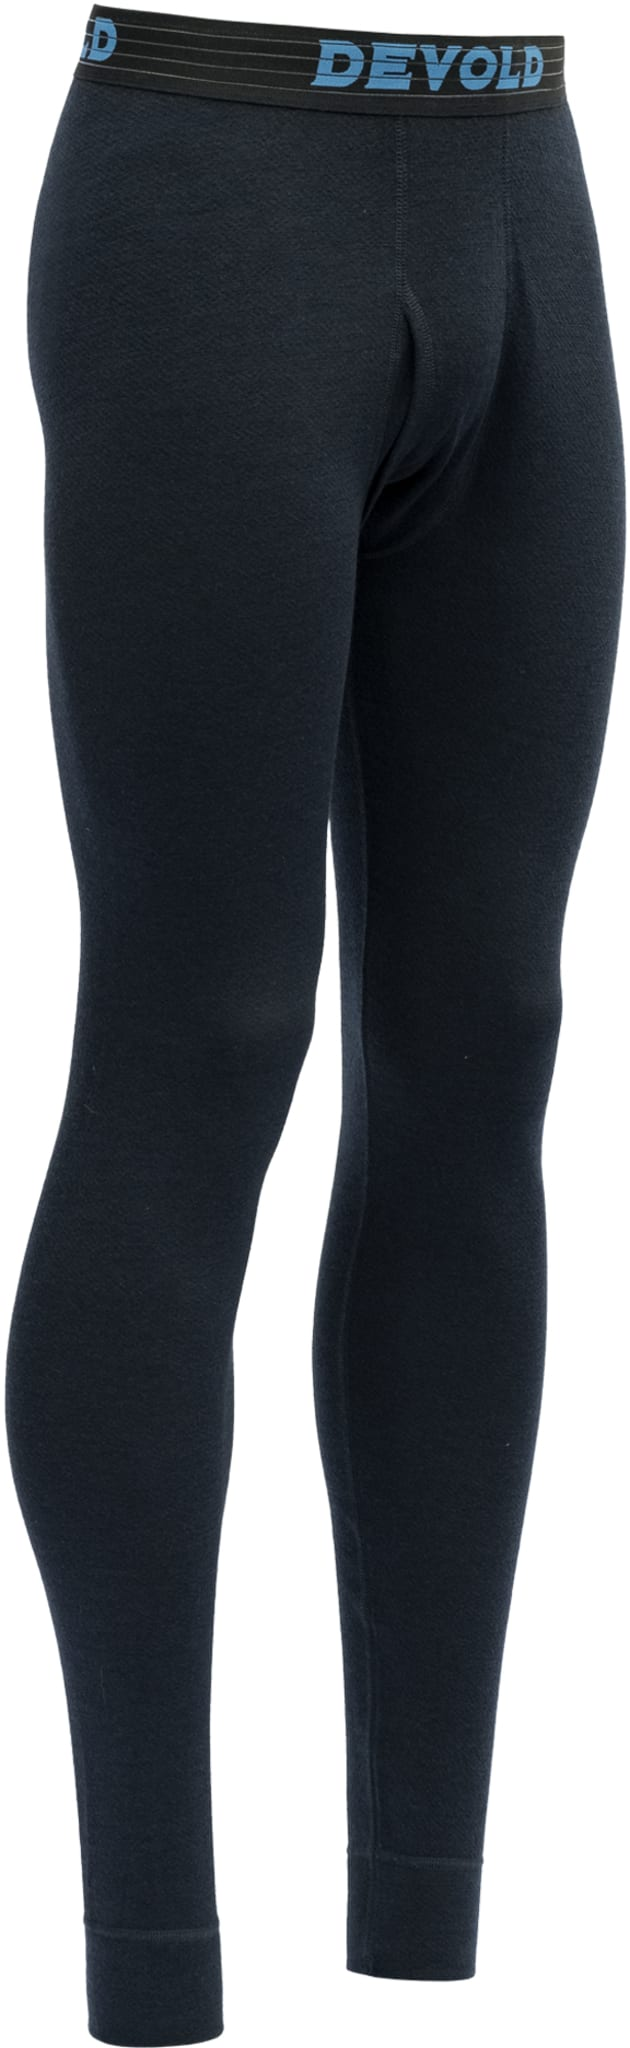 Expedition Long Johns w/fly Ms